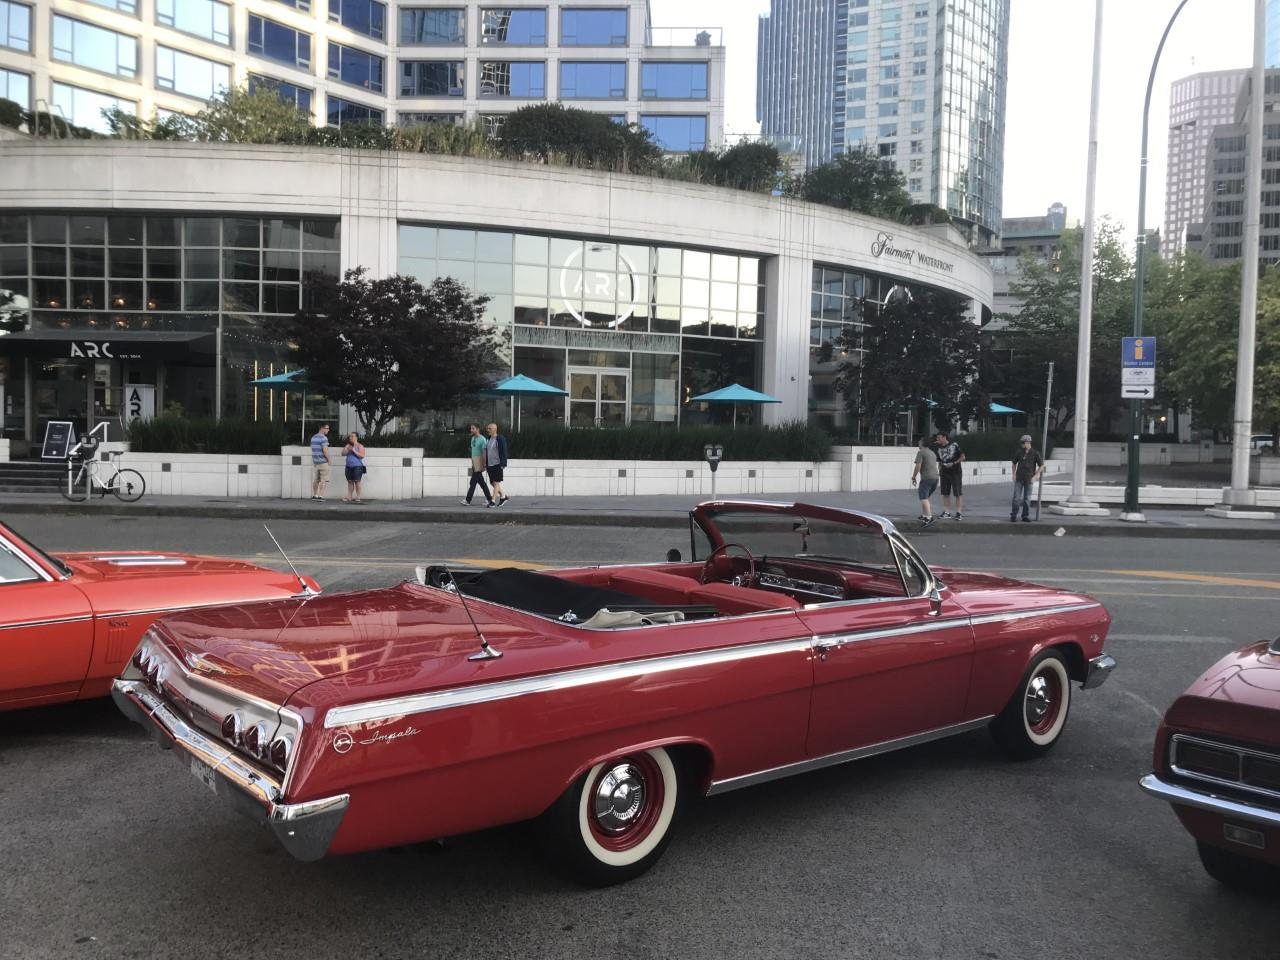 1962 Chevrolet Impala (CC-1412039) for sale in Coquitlam, British Columbia